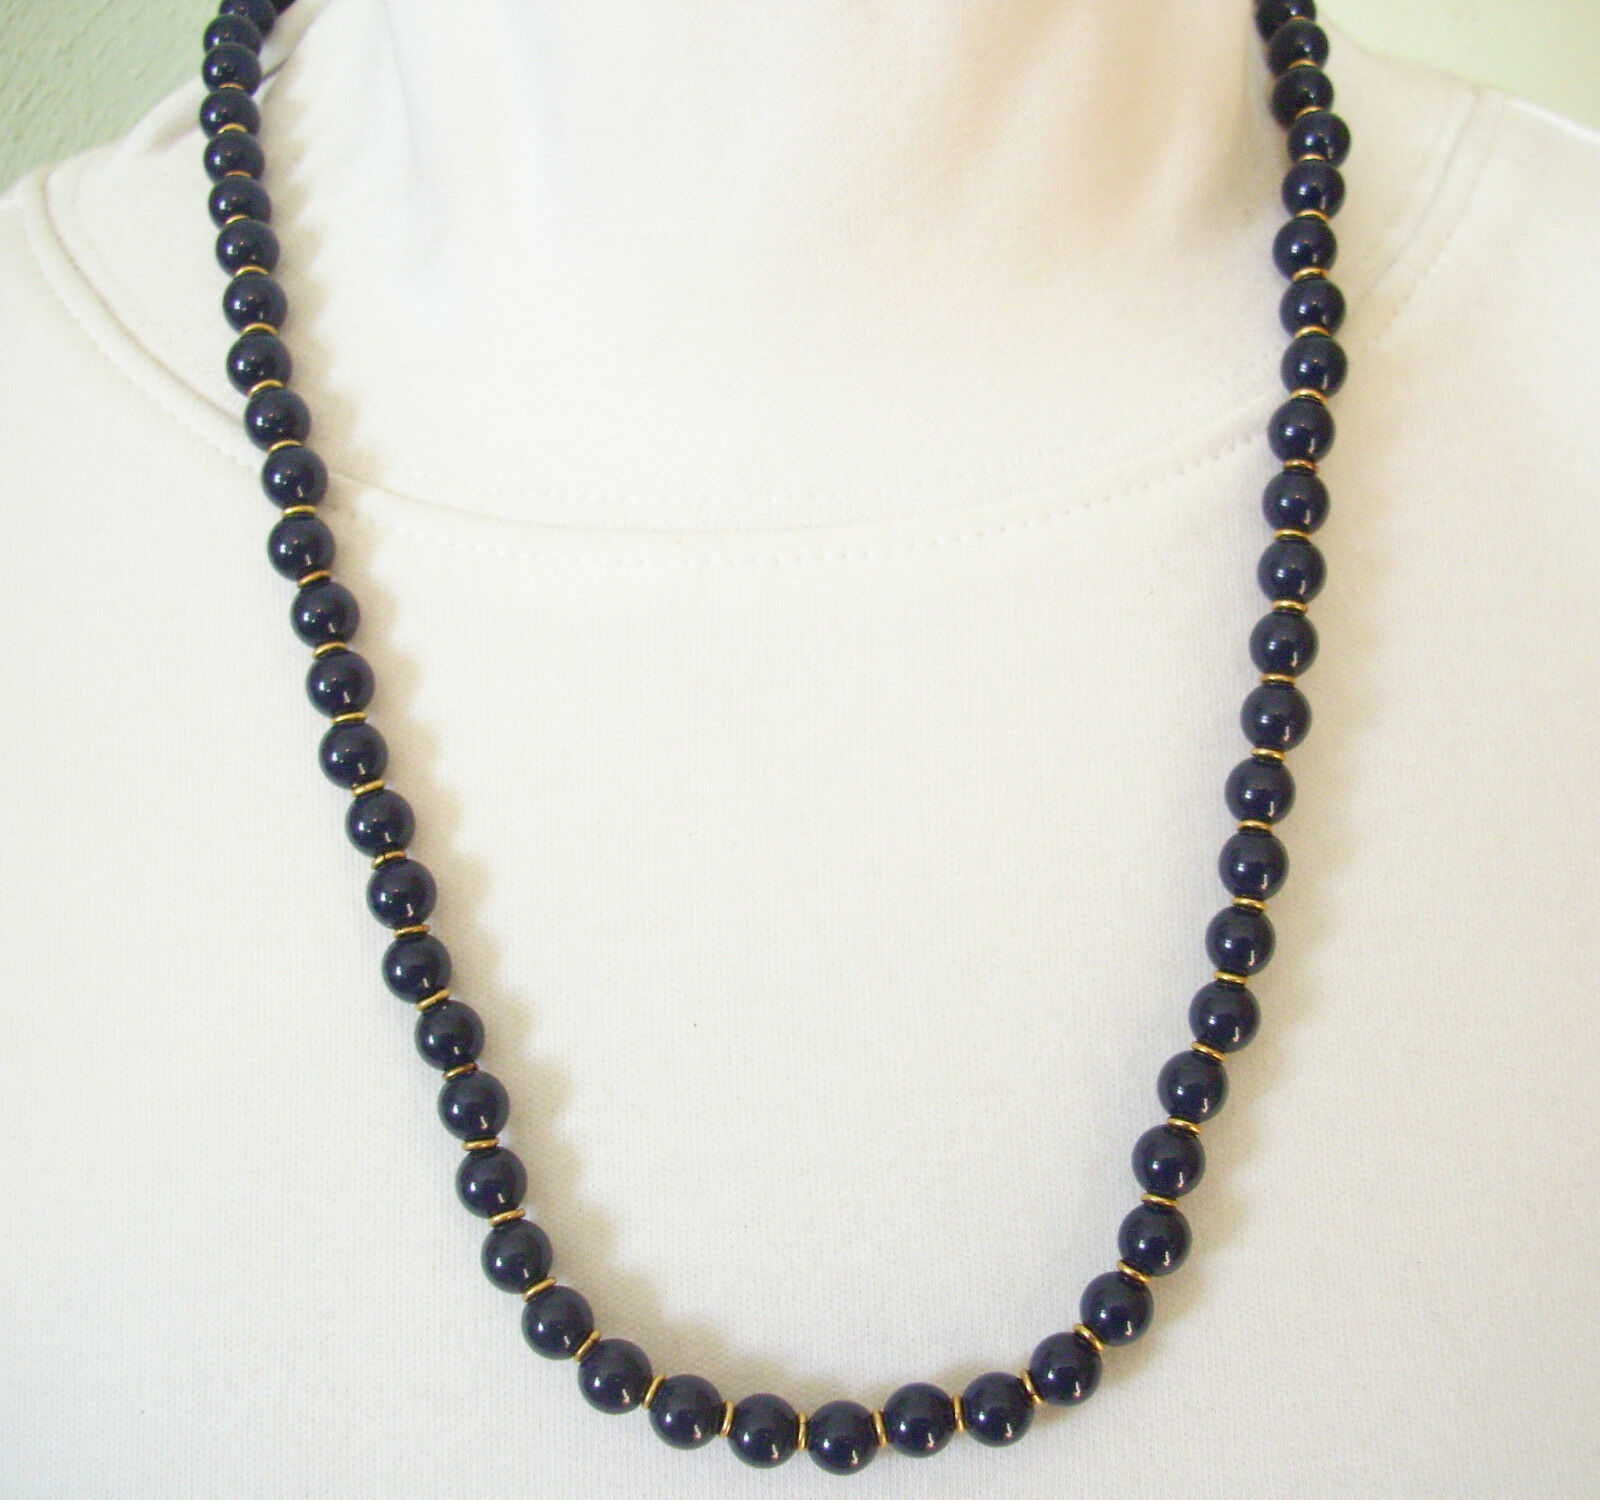 NAPIER NAVY Blue Beads Necklace Gold Plate Spacers Strand String Vintage